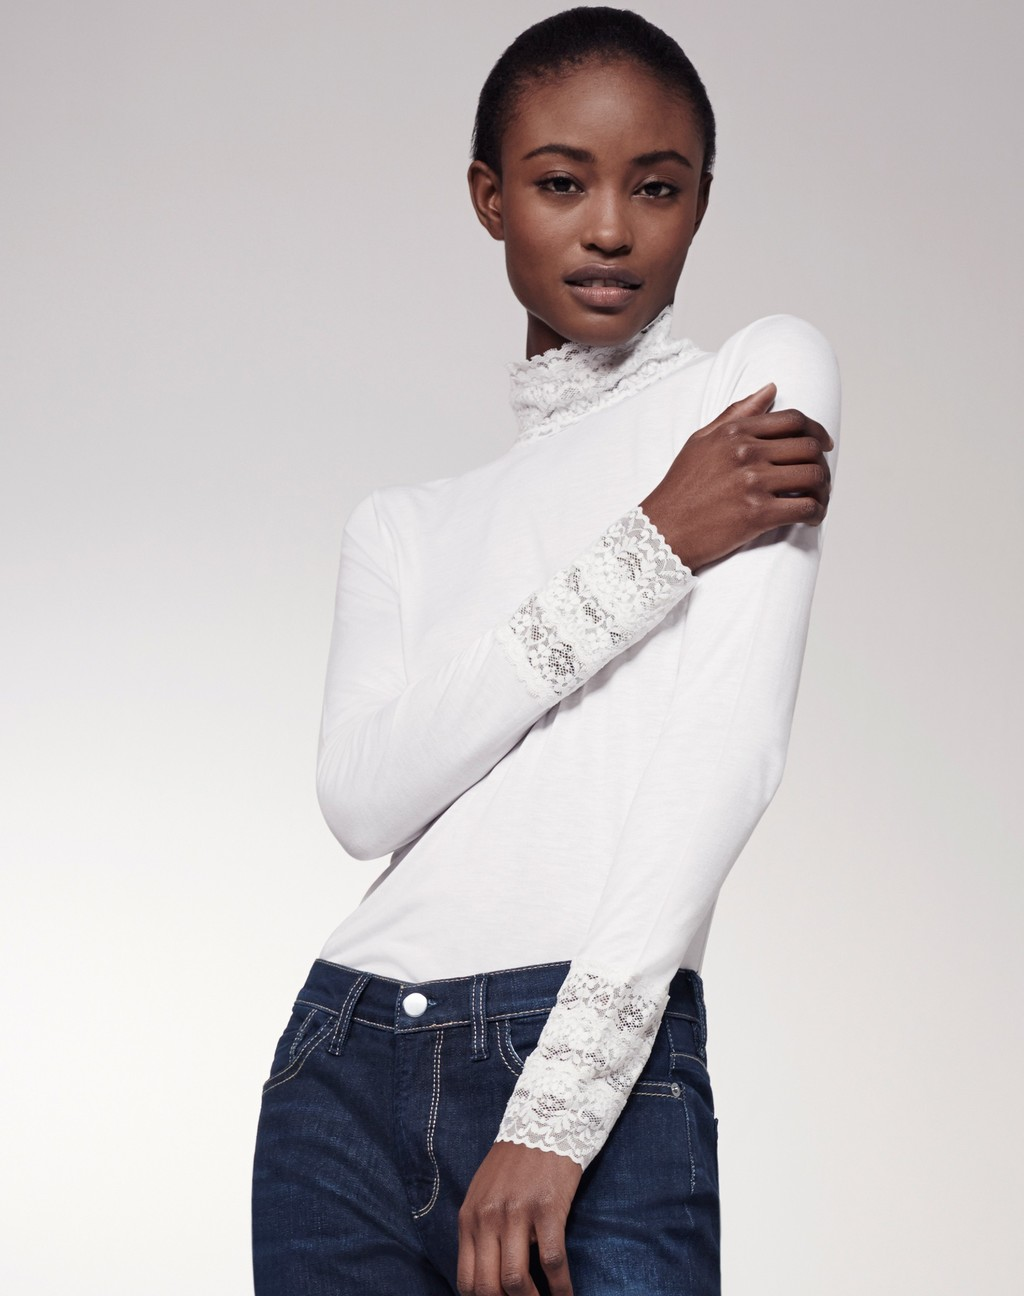 Lace Stand + Cuff Layering Top White - pattern: plain; neckline: roll neck; predominant colour: white; occasions: casual, creative work; length: standard; style: top; fibres: viscose/rayon - 100%; fit: tight; sleeve length: long sleeve; sleeve style: standard; pattern type: fabric; texture group: jersey - stretchy/drapey; embellishment: lace; season: s/s 2016; wardrobe: highlight